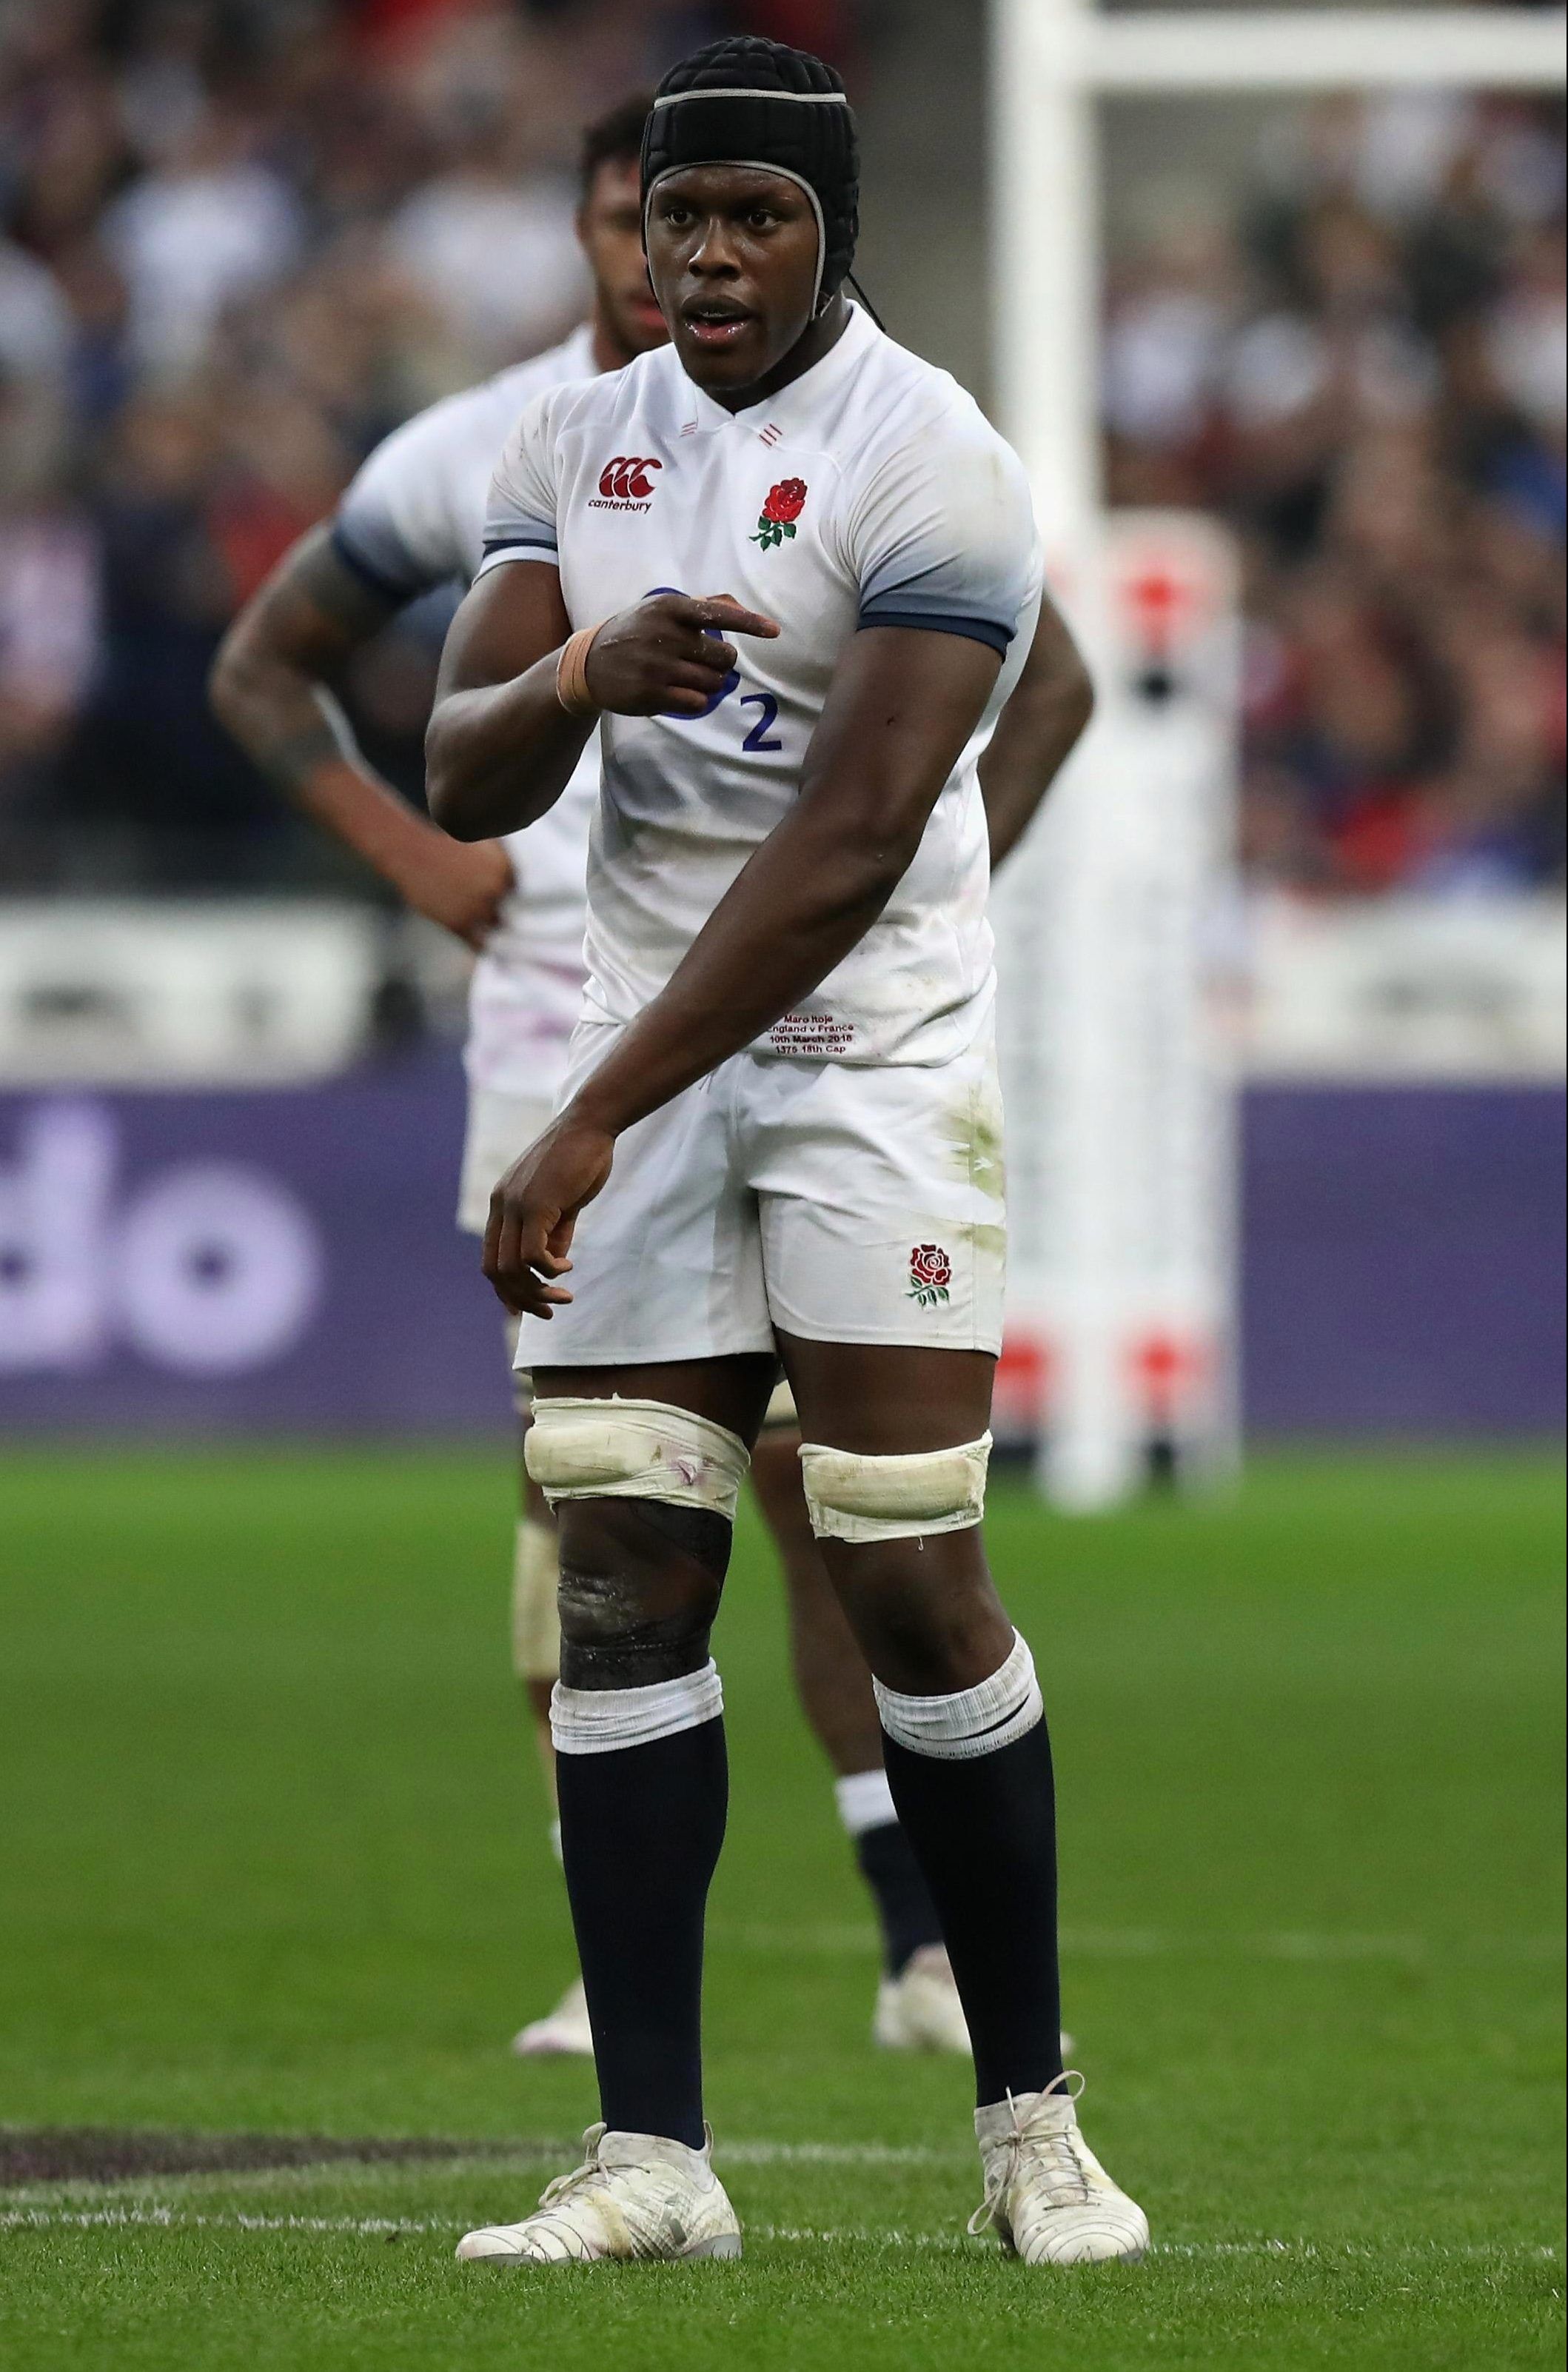 Maro Itoje points to a mark on his arm as he claims he was bitten during a maul